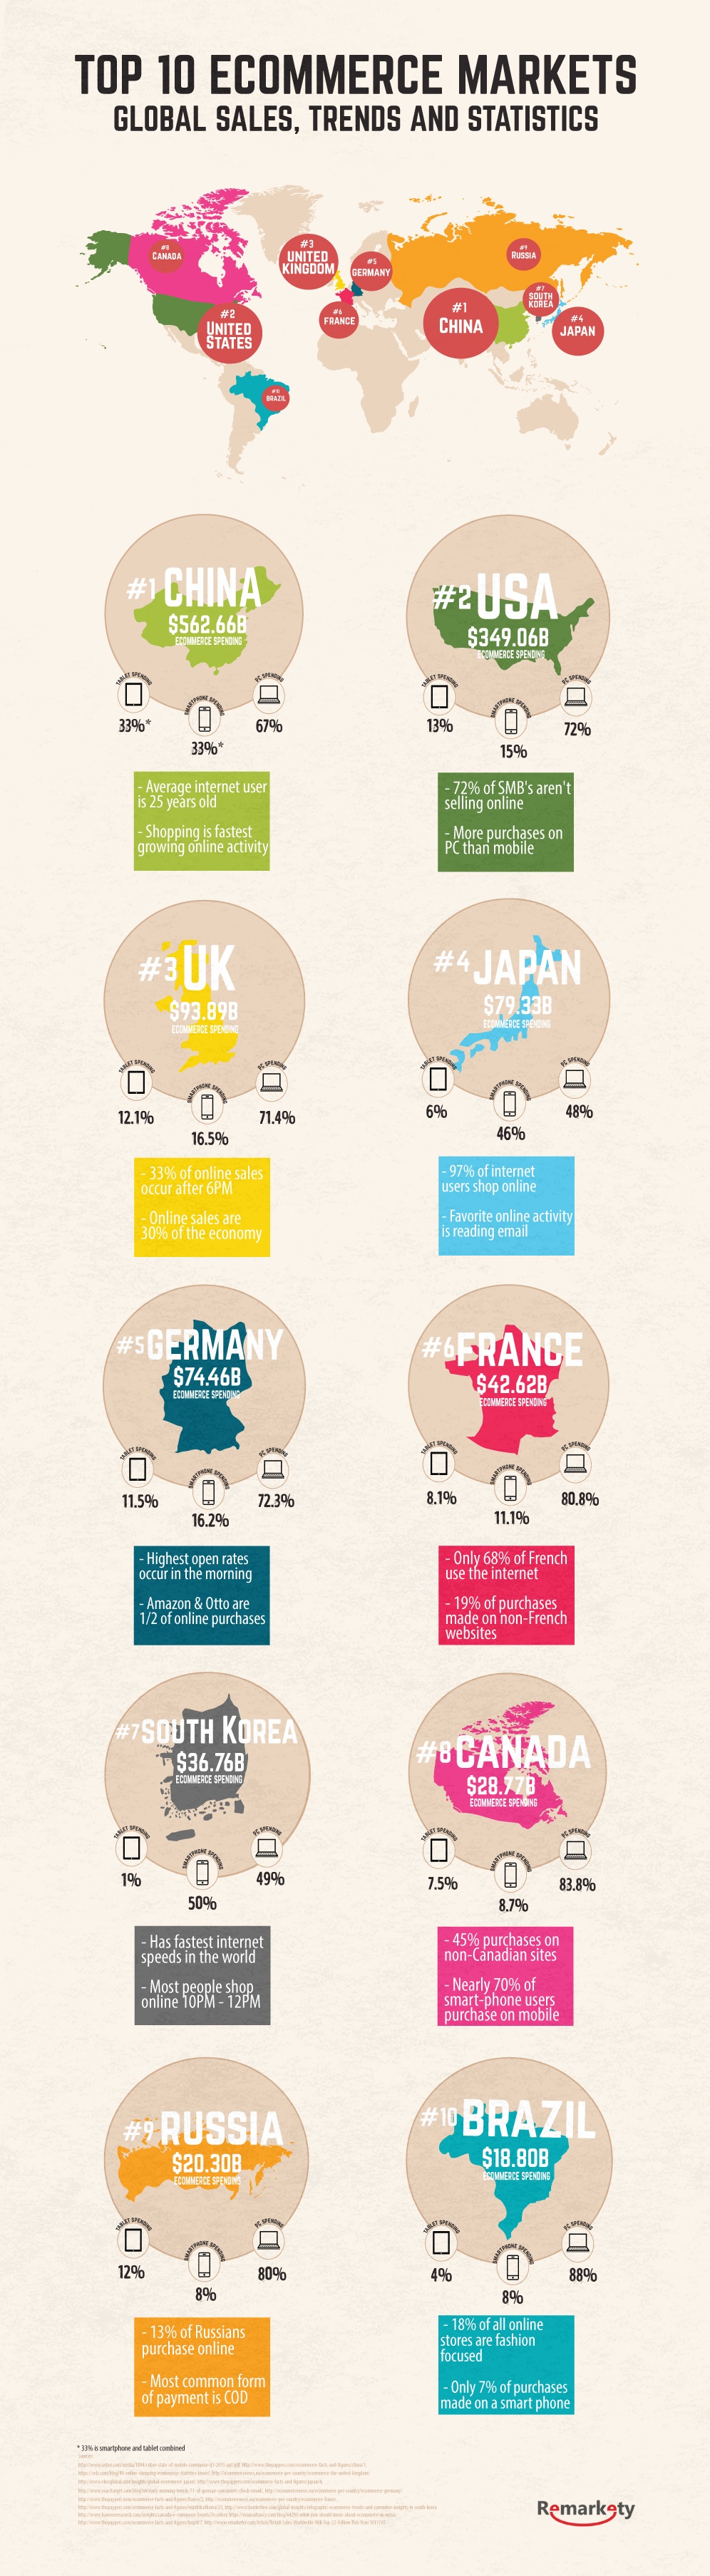 global_ecommerce_sales_trends_statistics_infographic_header (1)